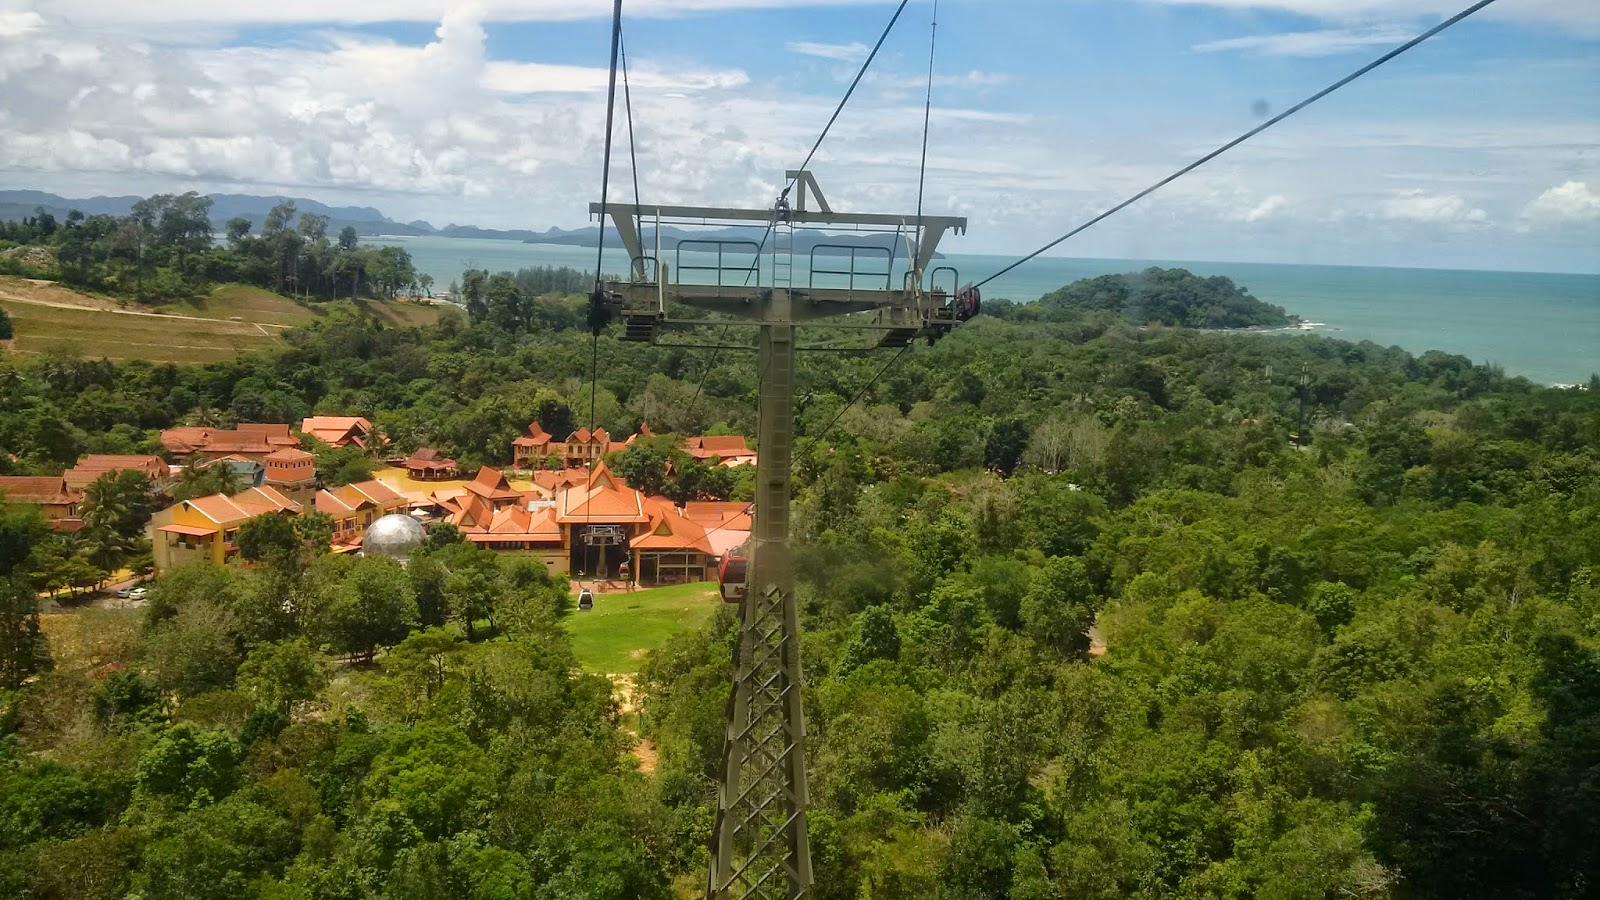 langkawi sky bridge, skydome langkawi, cable car langkawi price 2019, skycab langkawi combo, cable car langkawi price 2019, langkawi skycab 4 in 1 packages, harga tiket cable car langkawi 2019, harga tiket cable car langkawi 2018